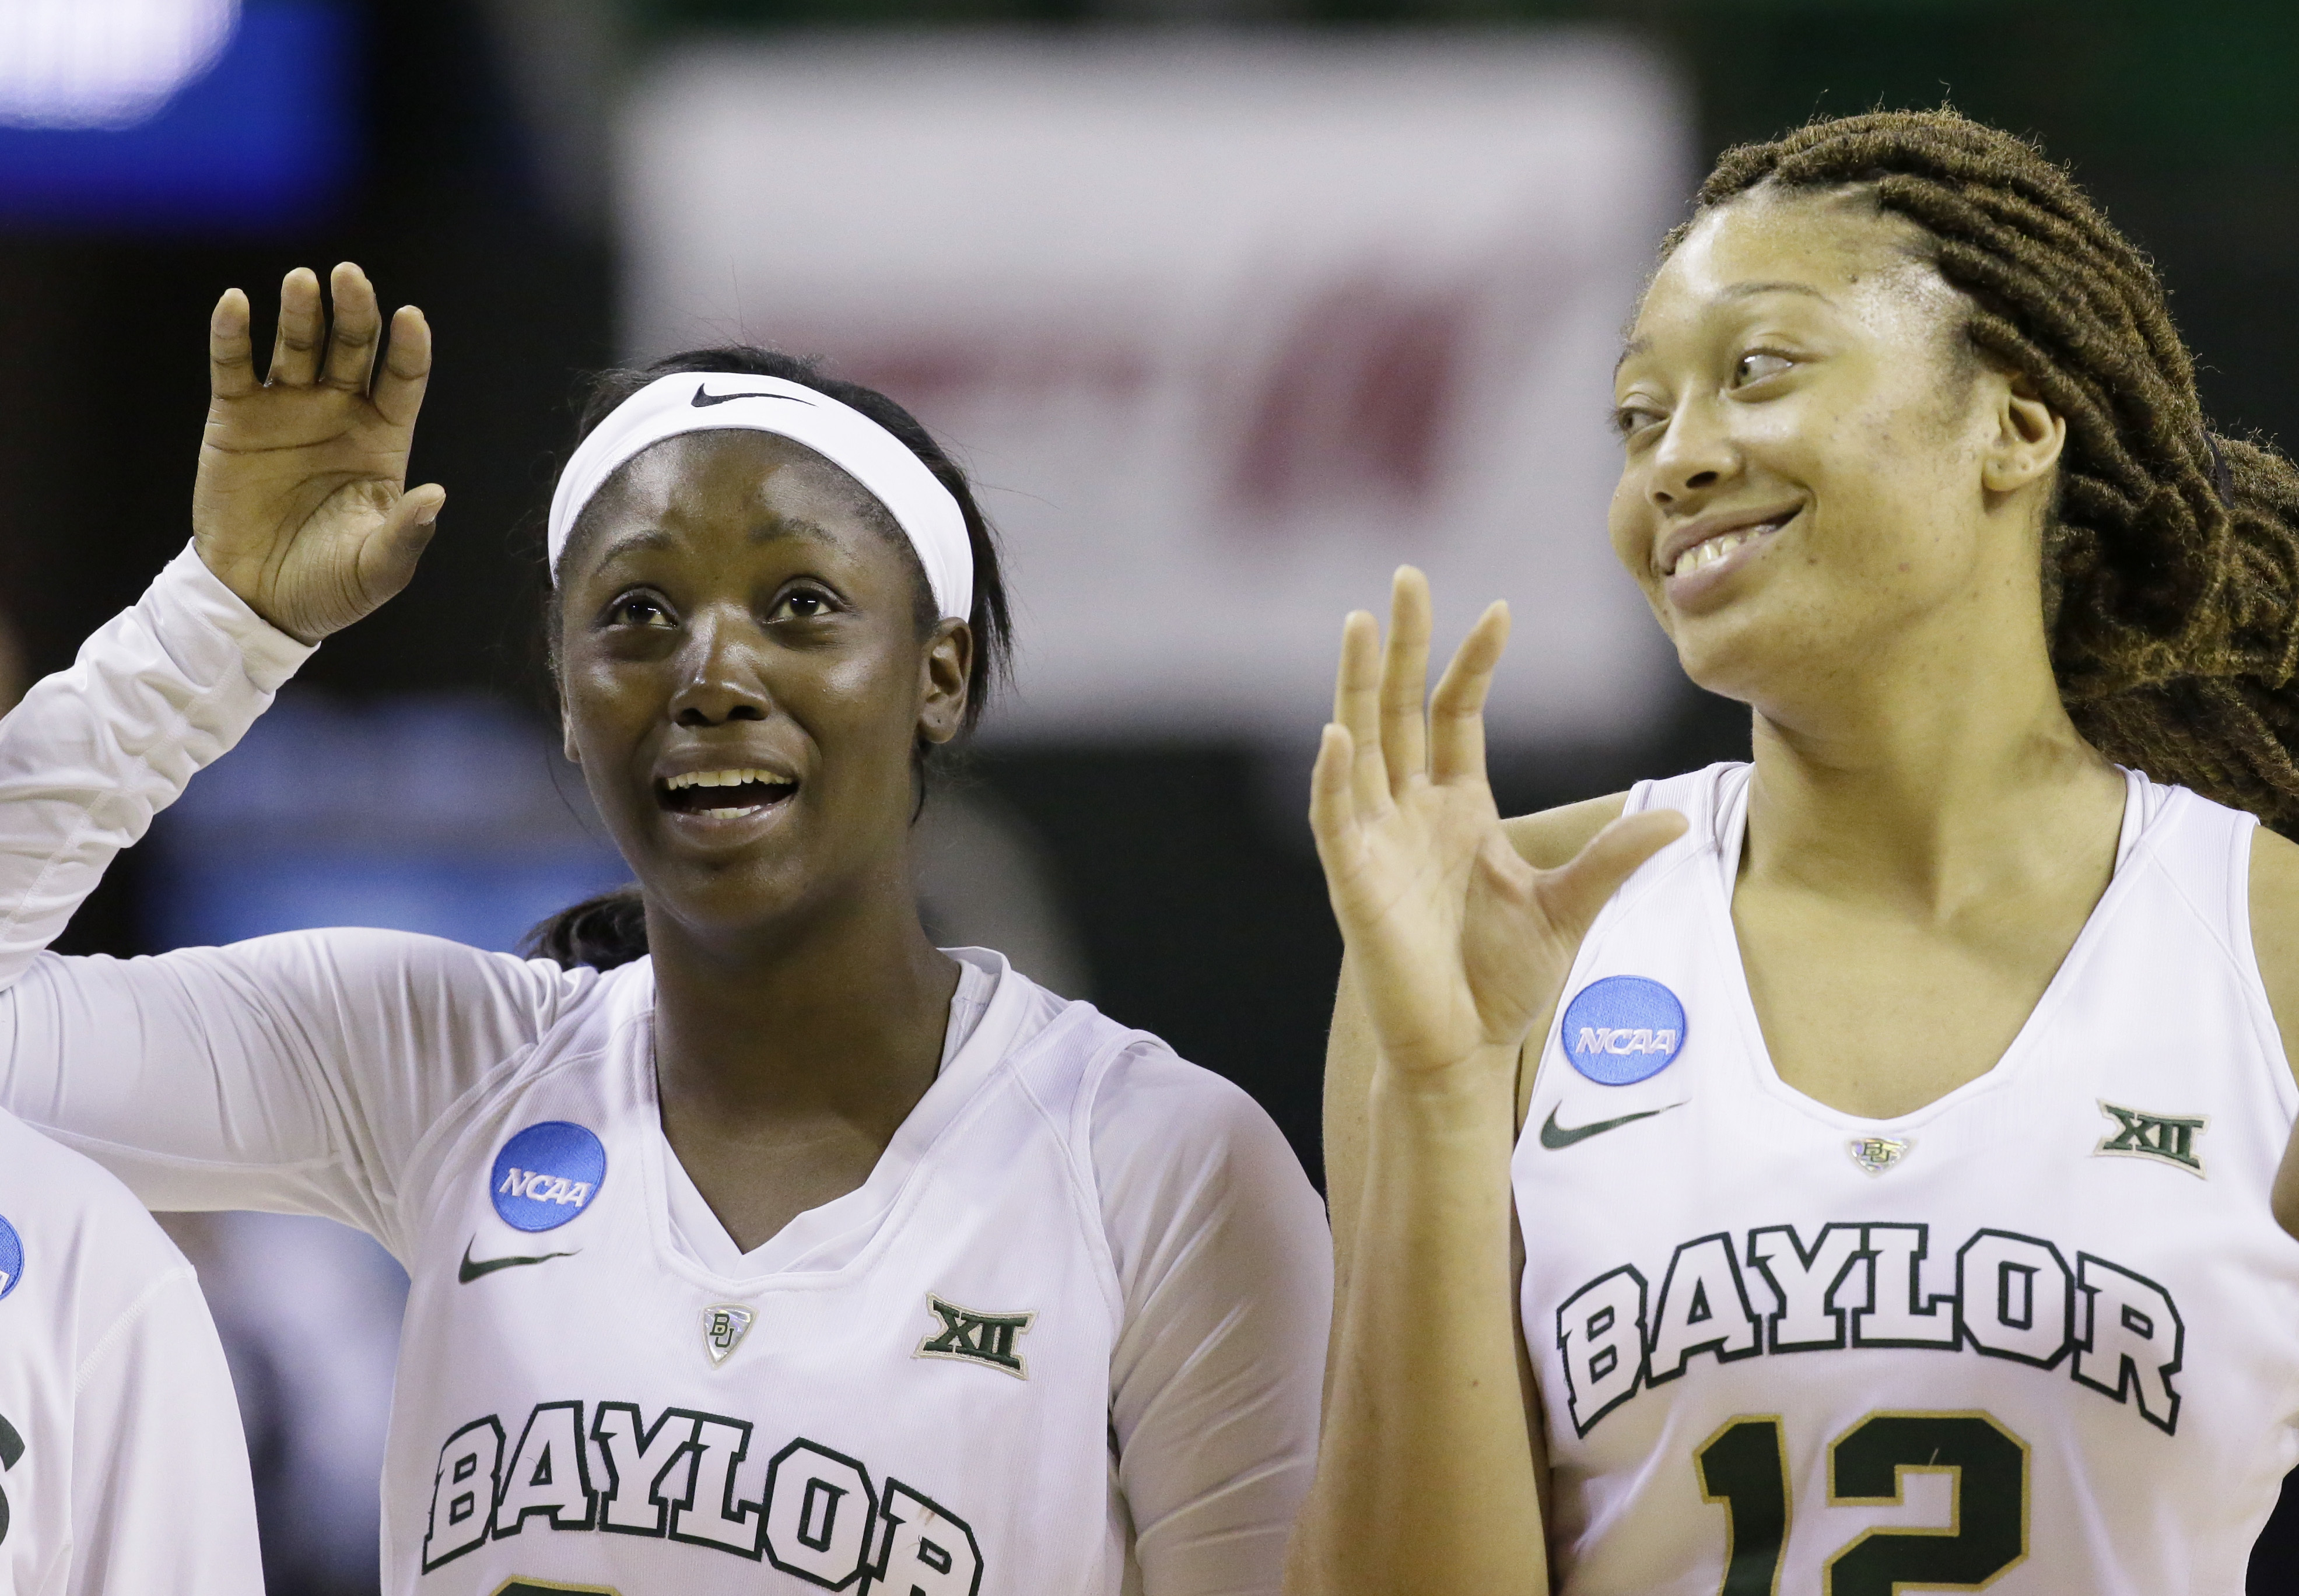 Baylor guards Alexis Jones, left, and Alexis Prince (12) celebrate after defeating Idaho in a first-round women's college basketball game in the NCAA Tournament Friday, March 18, 2016, in Waco, Texas.  (AP Photo/LM Otero)